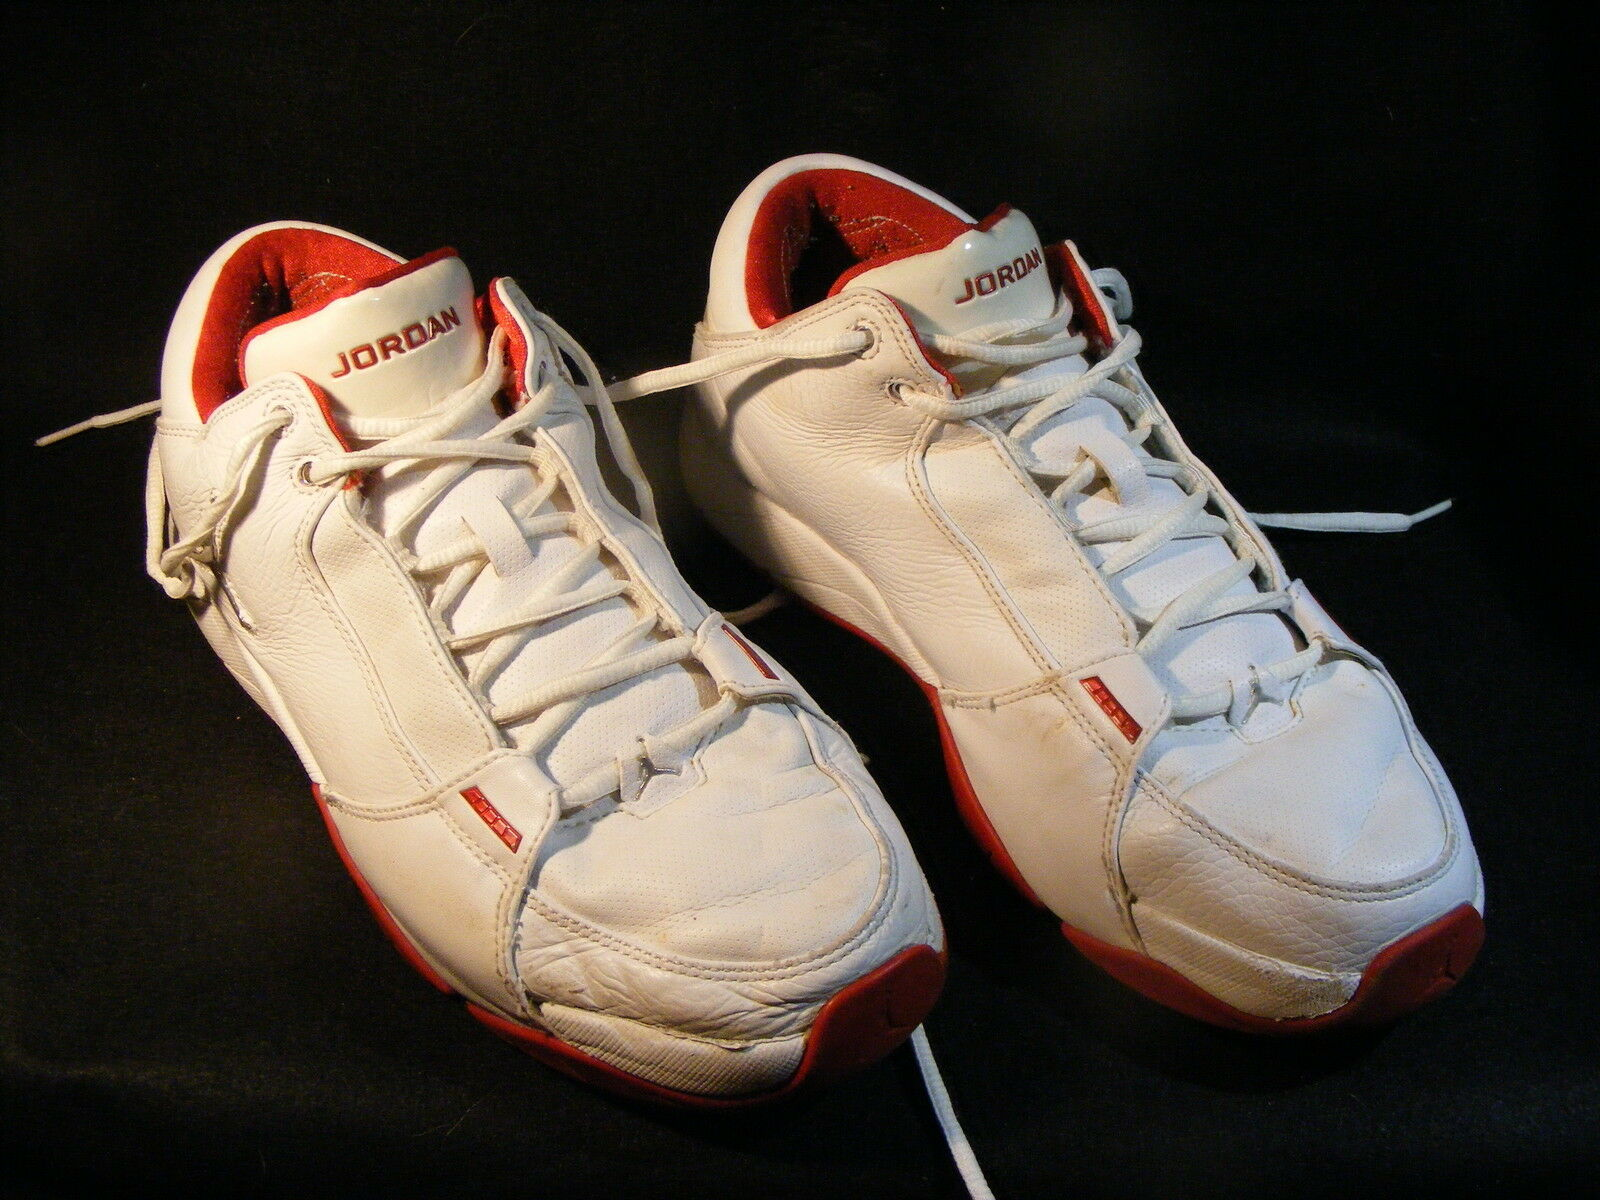 Men's Nike Air Jordan Hoops Low 2006 White/Red Gently Used 314312-102 The most popular shoes for men and women